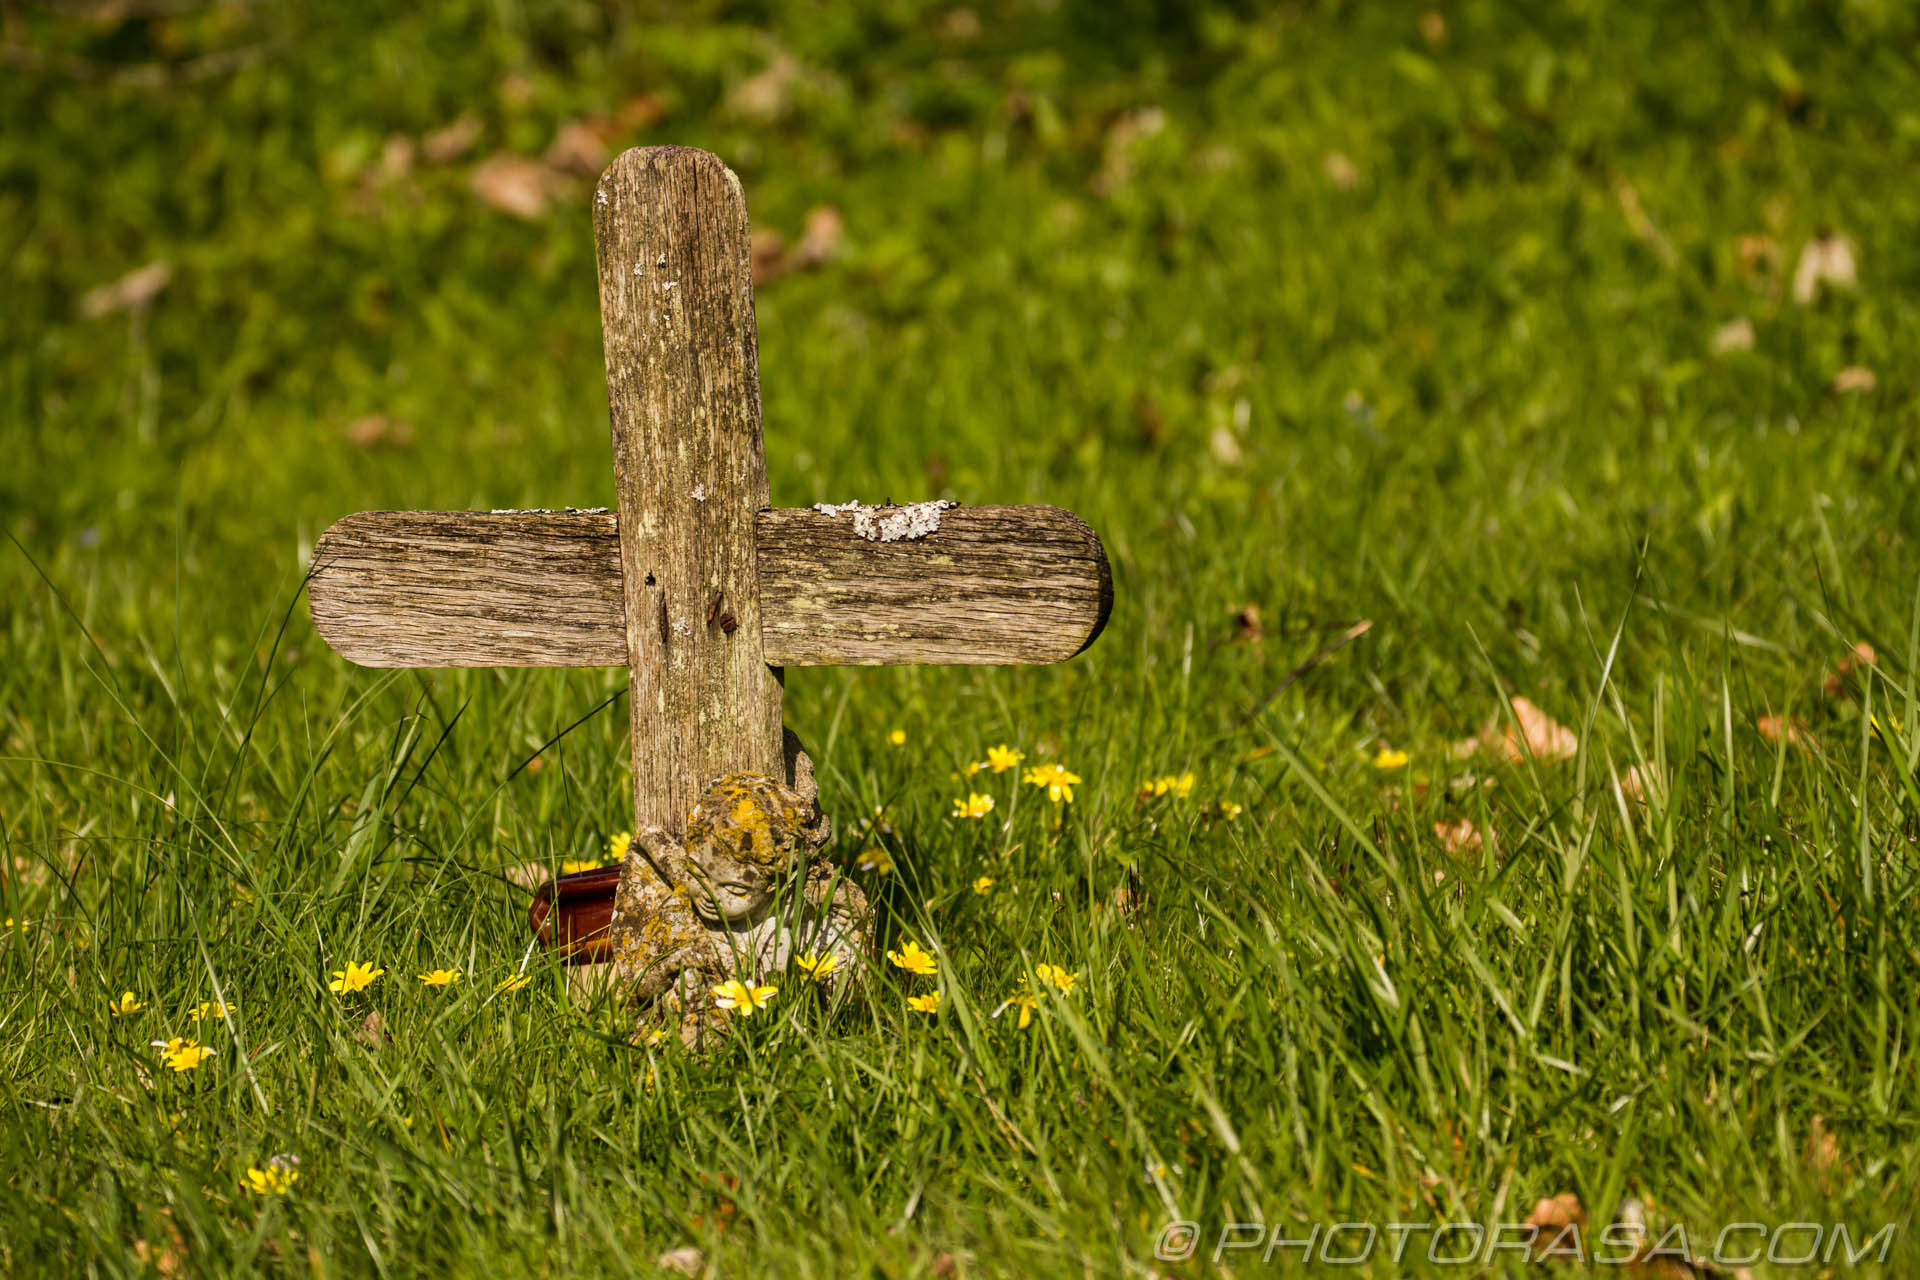 http://photorasa.com/saints-church-staplehurst-kent/wooden-cross-grave-marker/